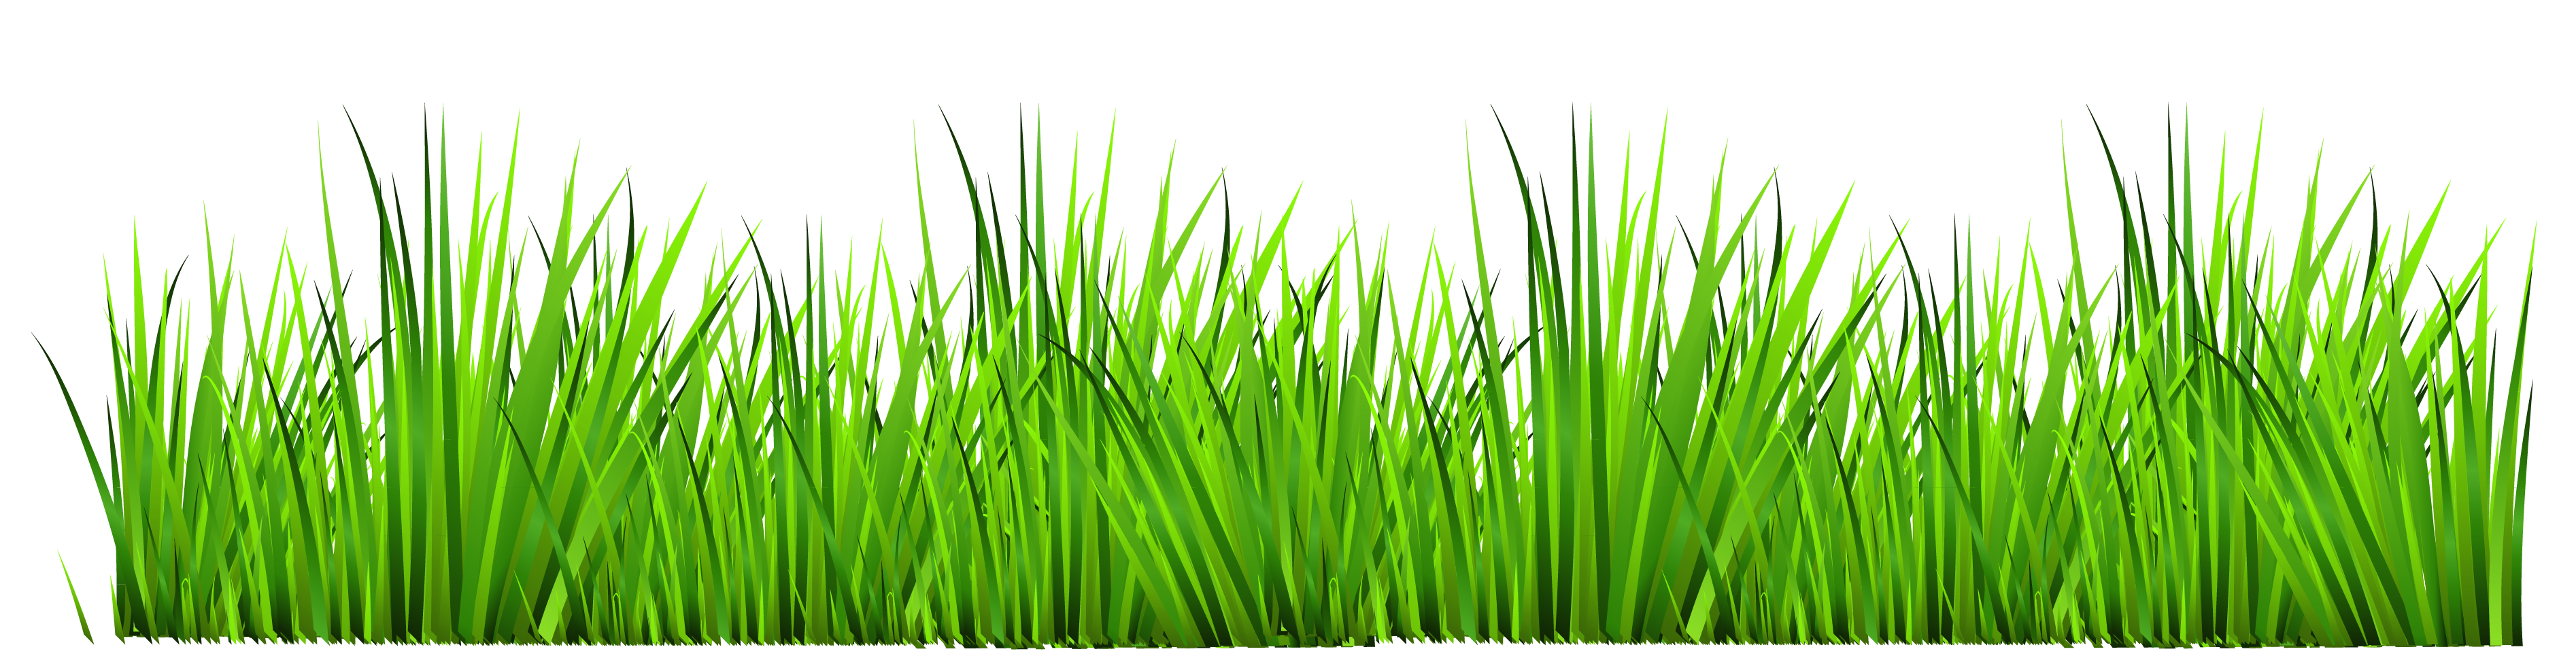 Grass clipart #8, Download drawings